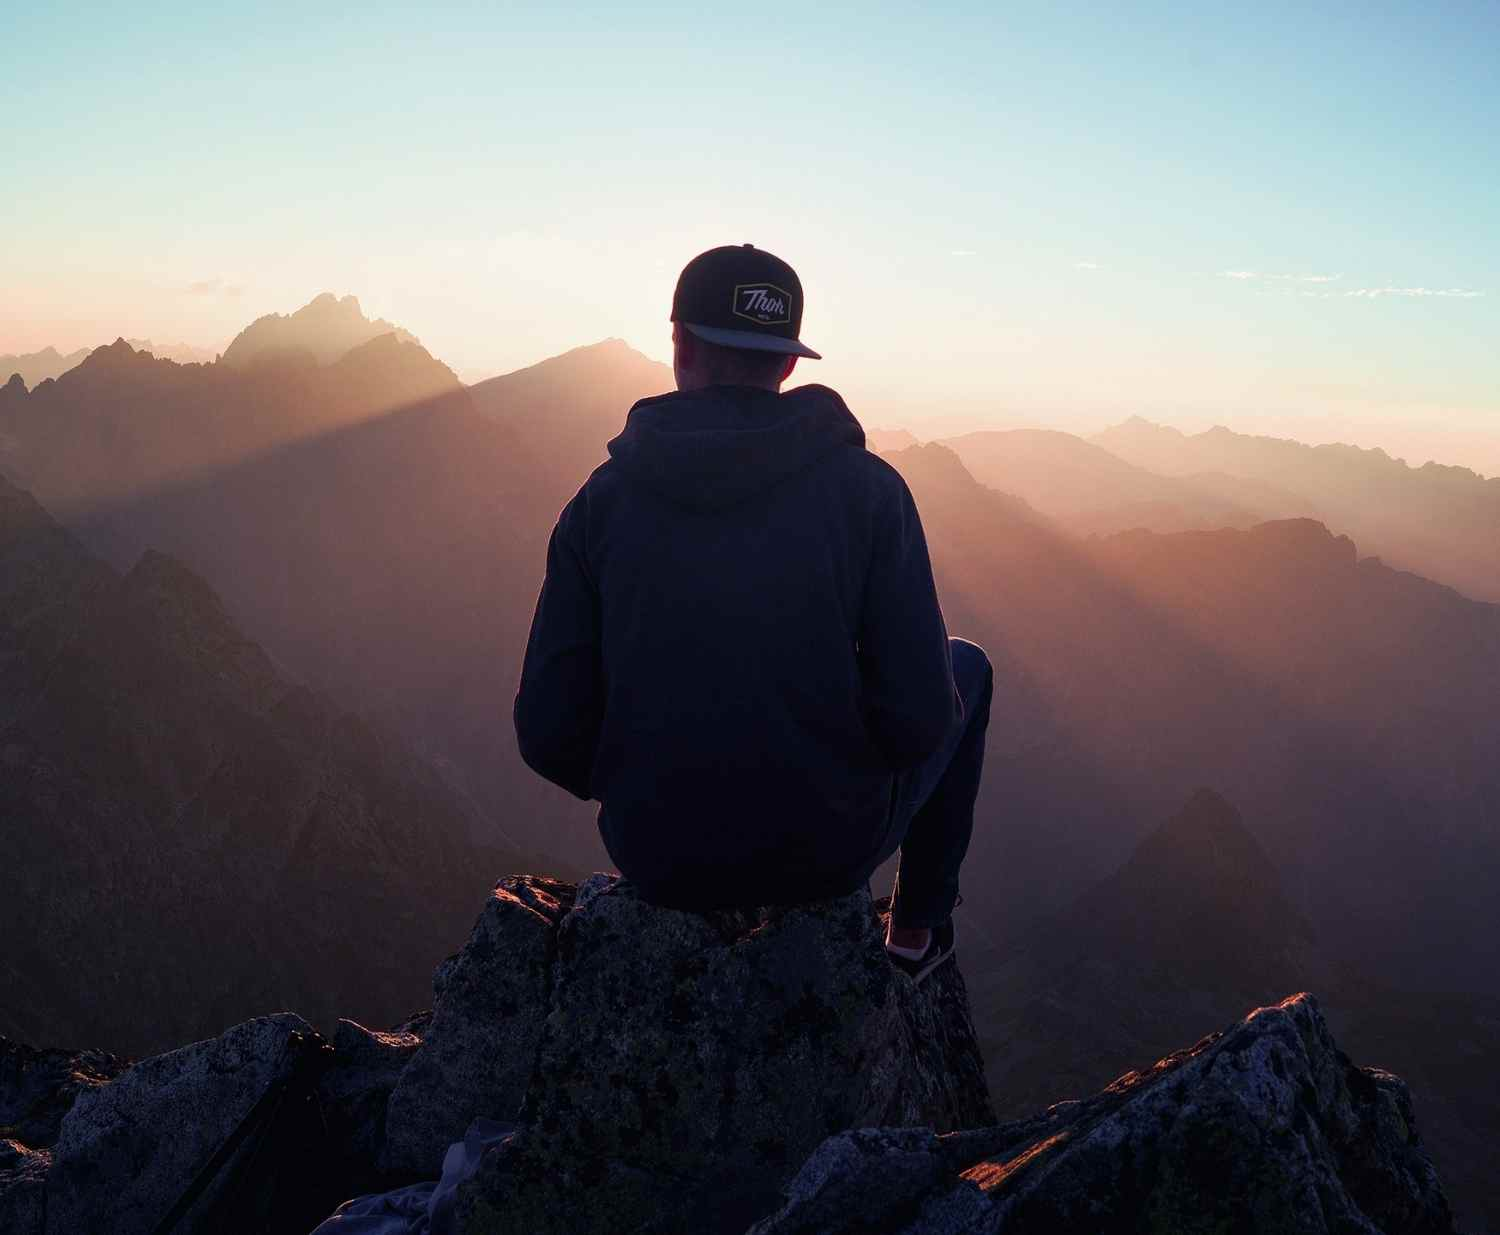 Man sitting on a mountain looking out at a view